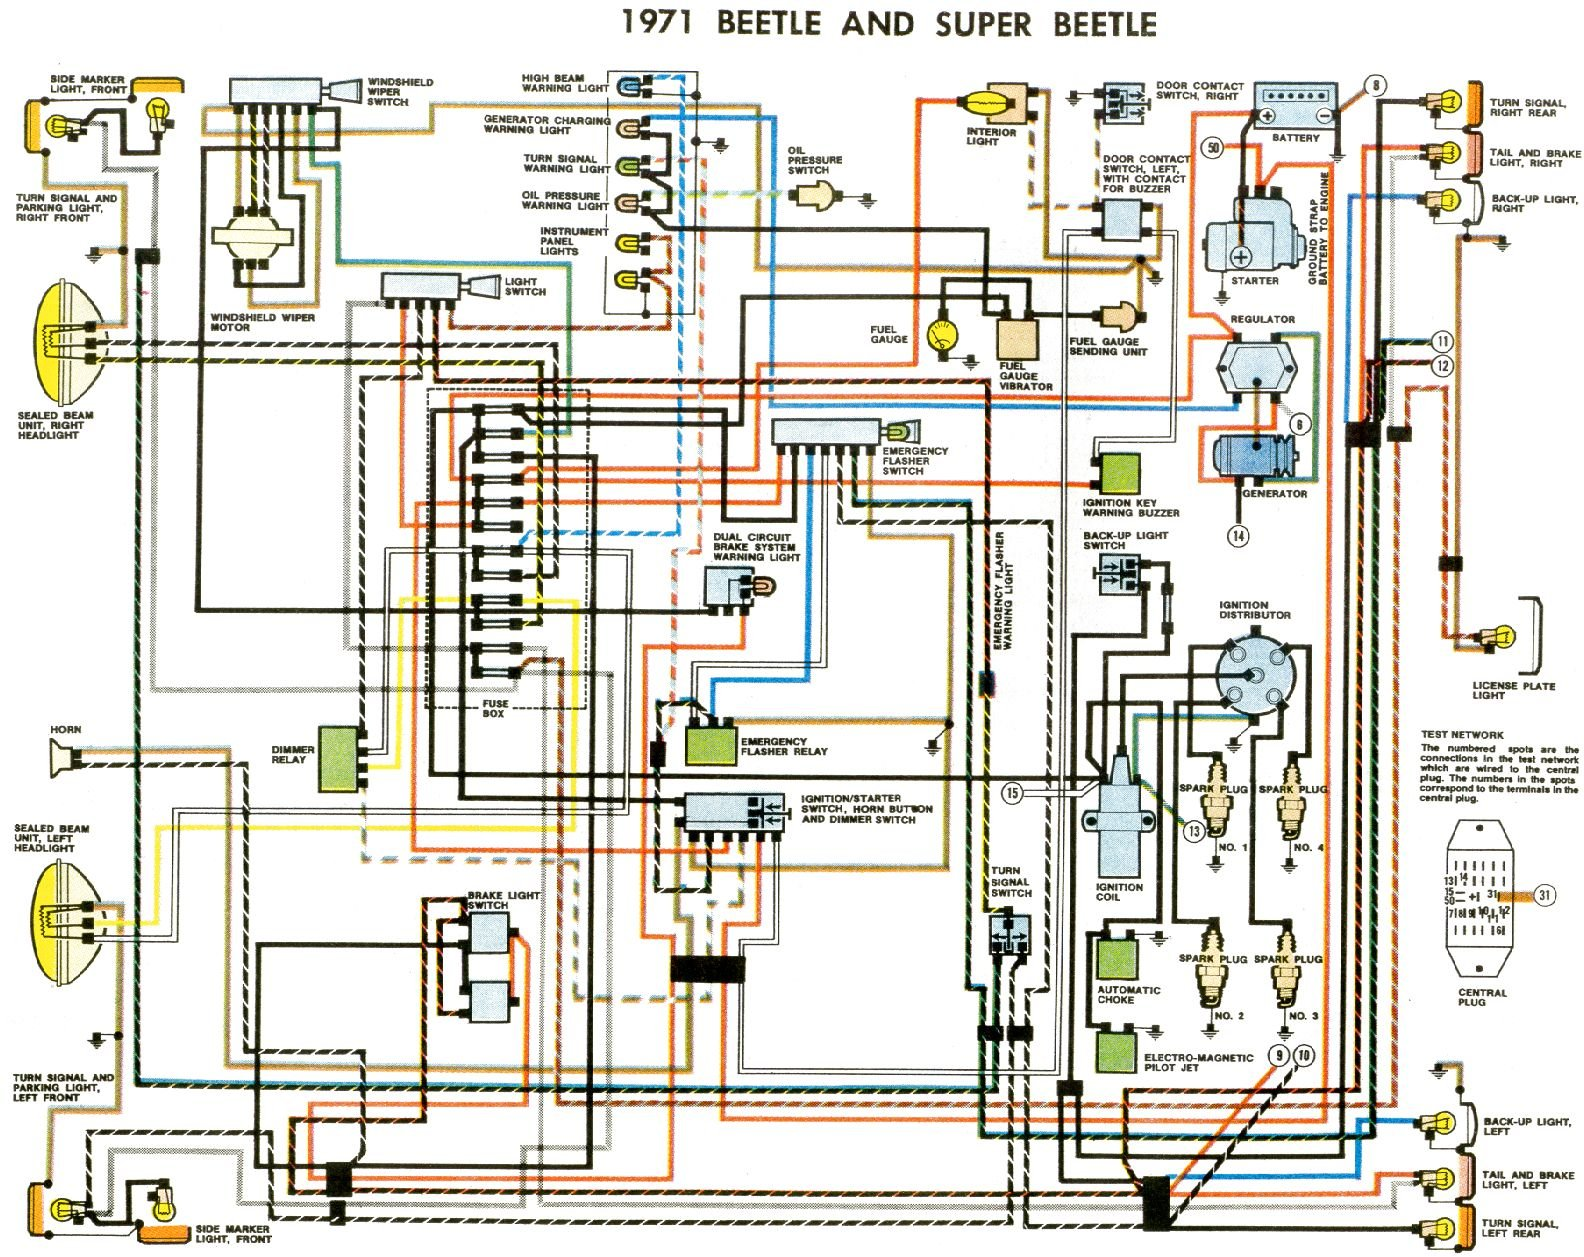 1971 beetle wiring diagram (usa) | thegoldenbug.com 2006 vw beetle battery fuse box diagram #6